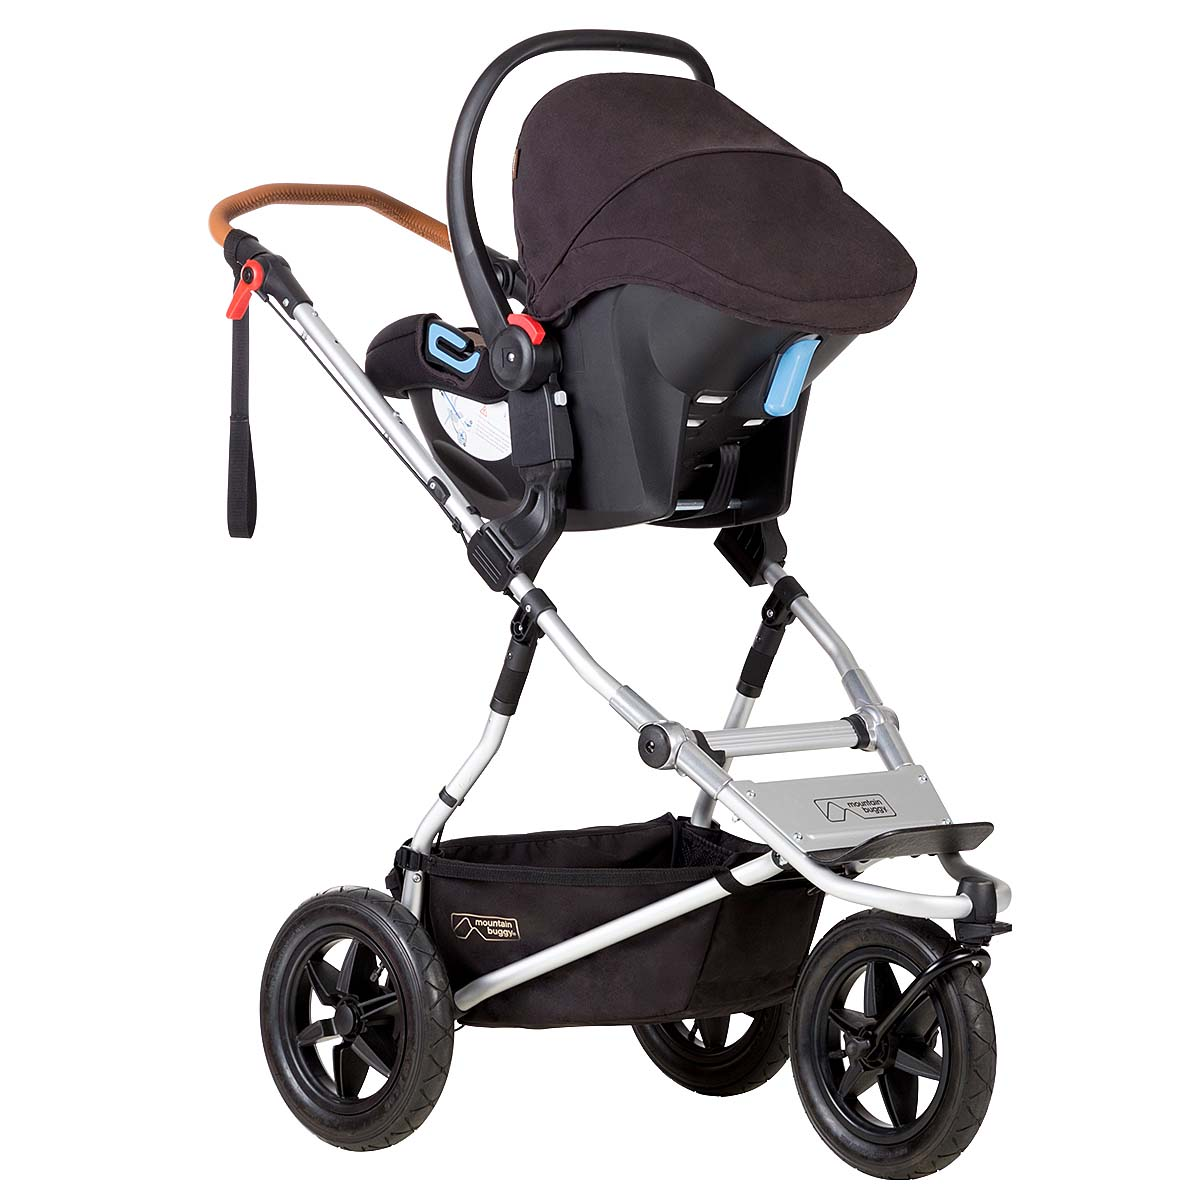 MOUNTAIN BUGGY Adaptér Maxi Cosi na kočík Terrain V3, Urban Jungle